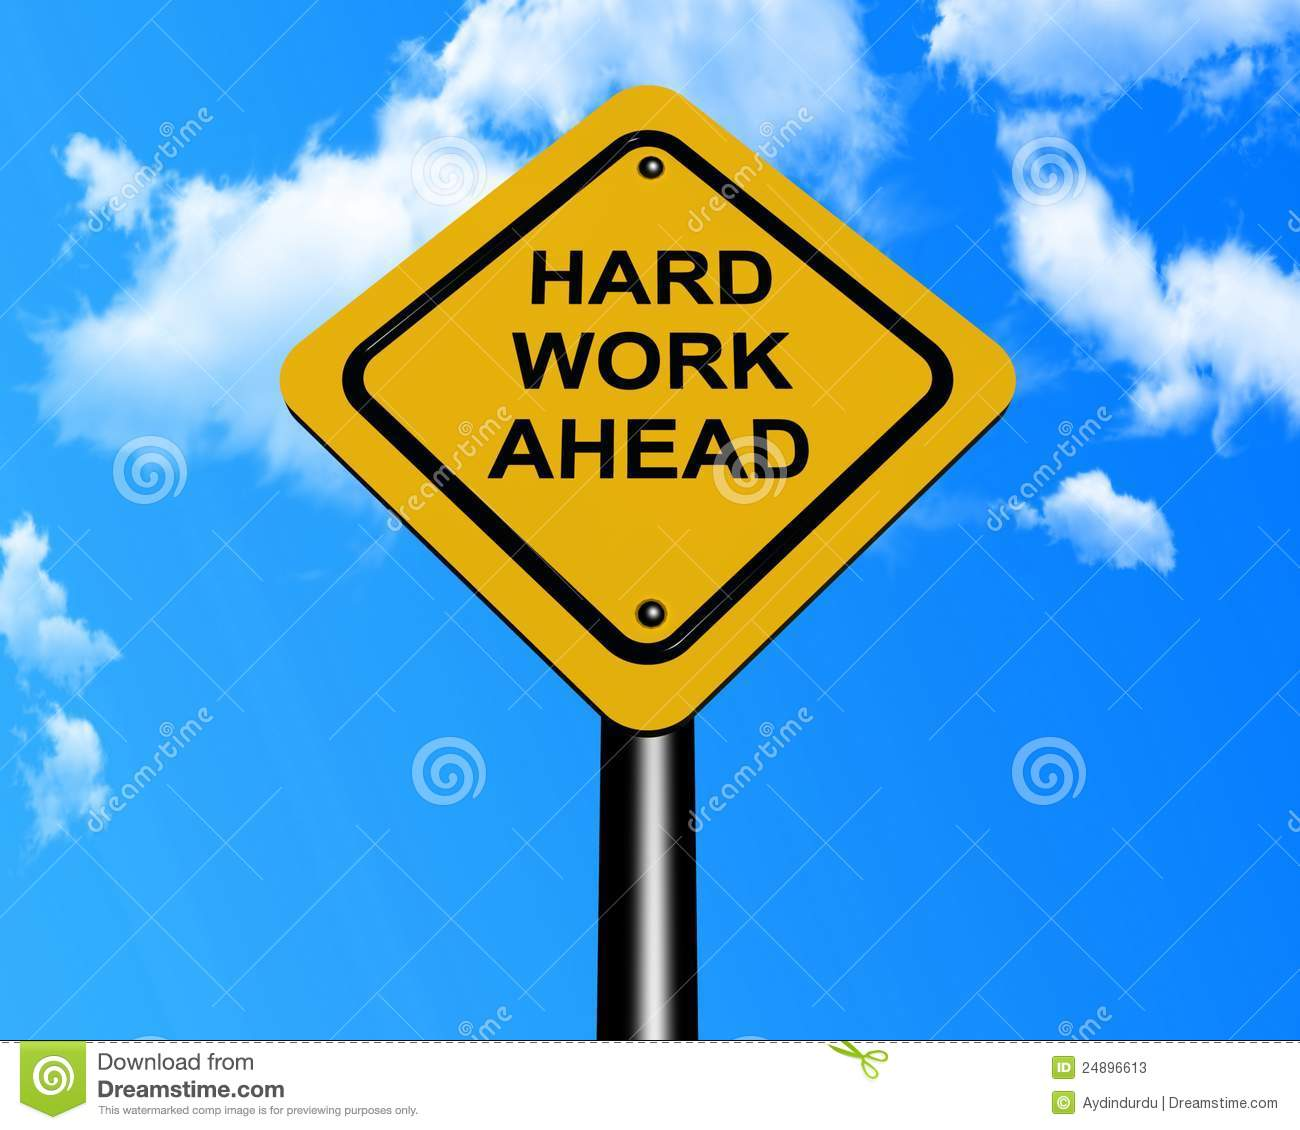 hard work ahead sign stock image image of yellow ahead. Black Bedroom Furniture Sets. Home Design Ideas